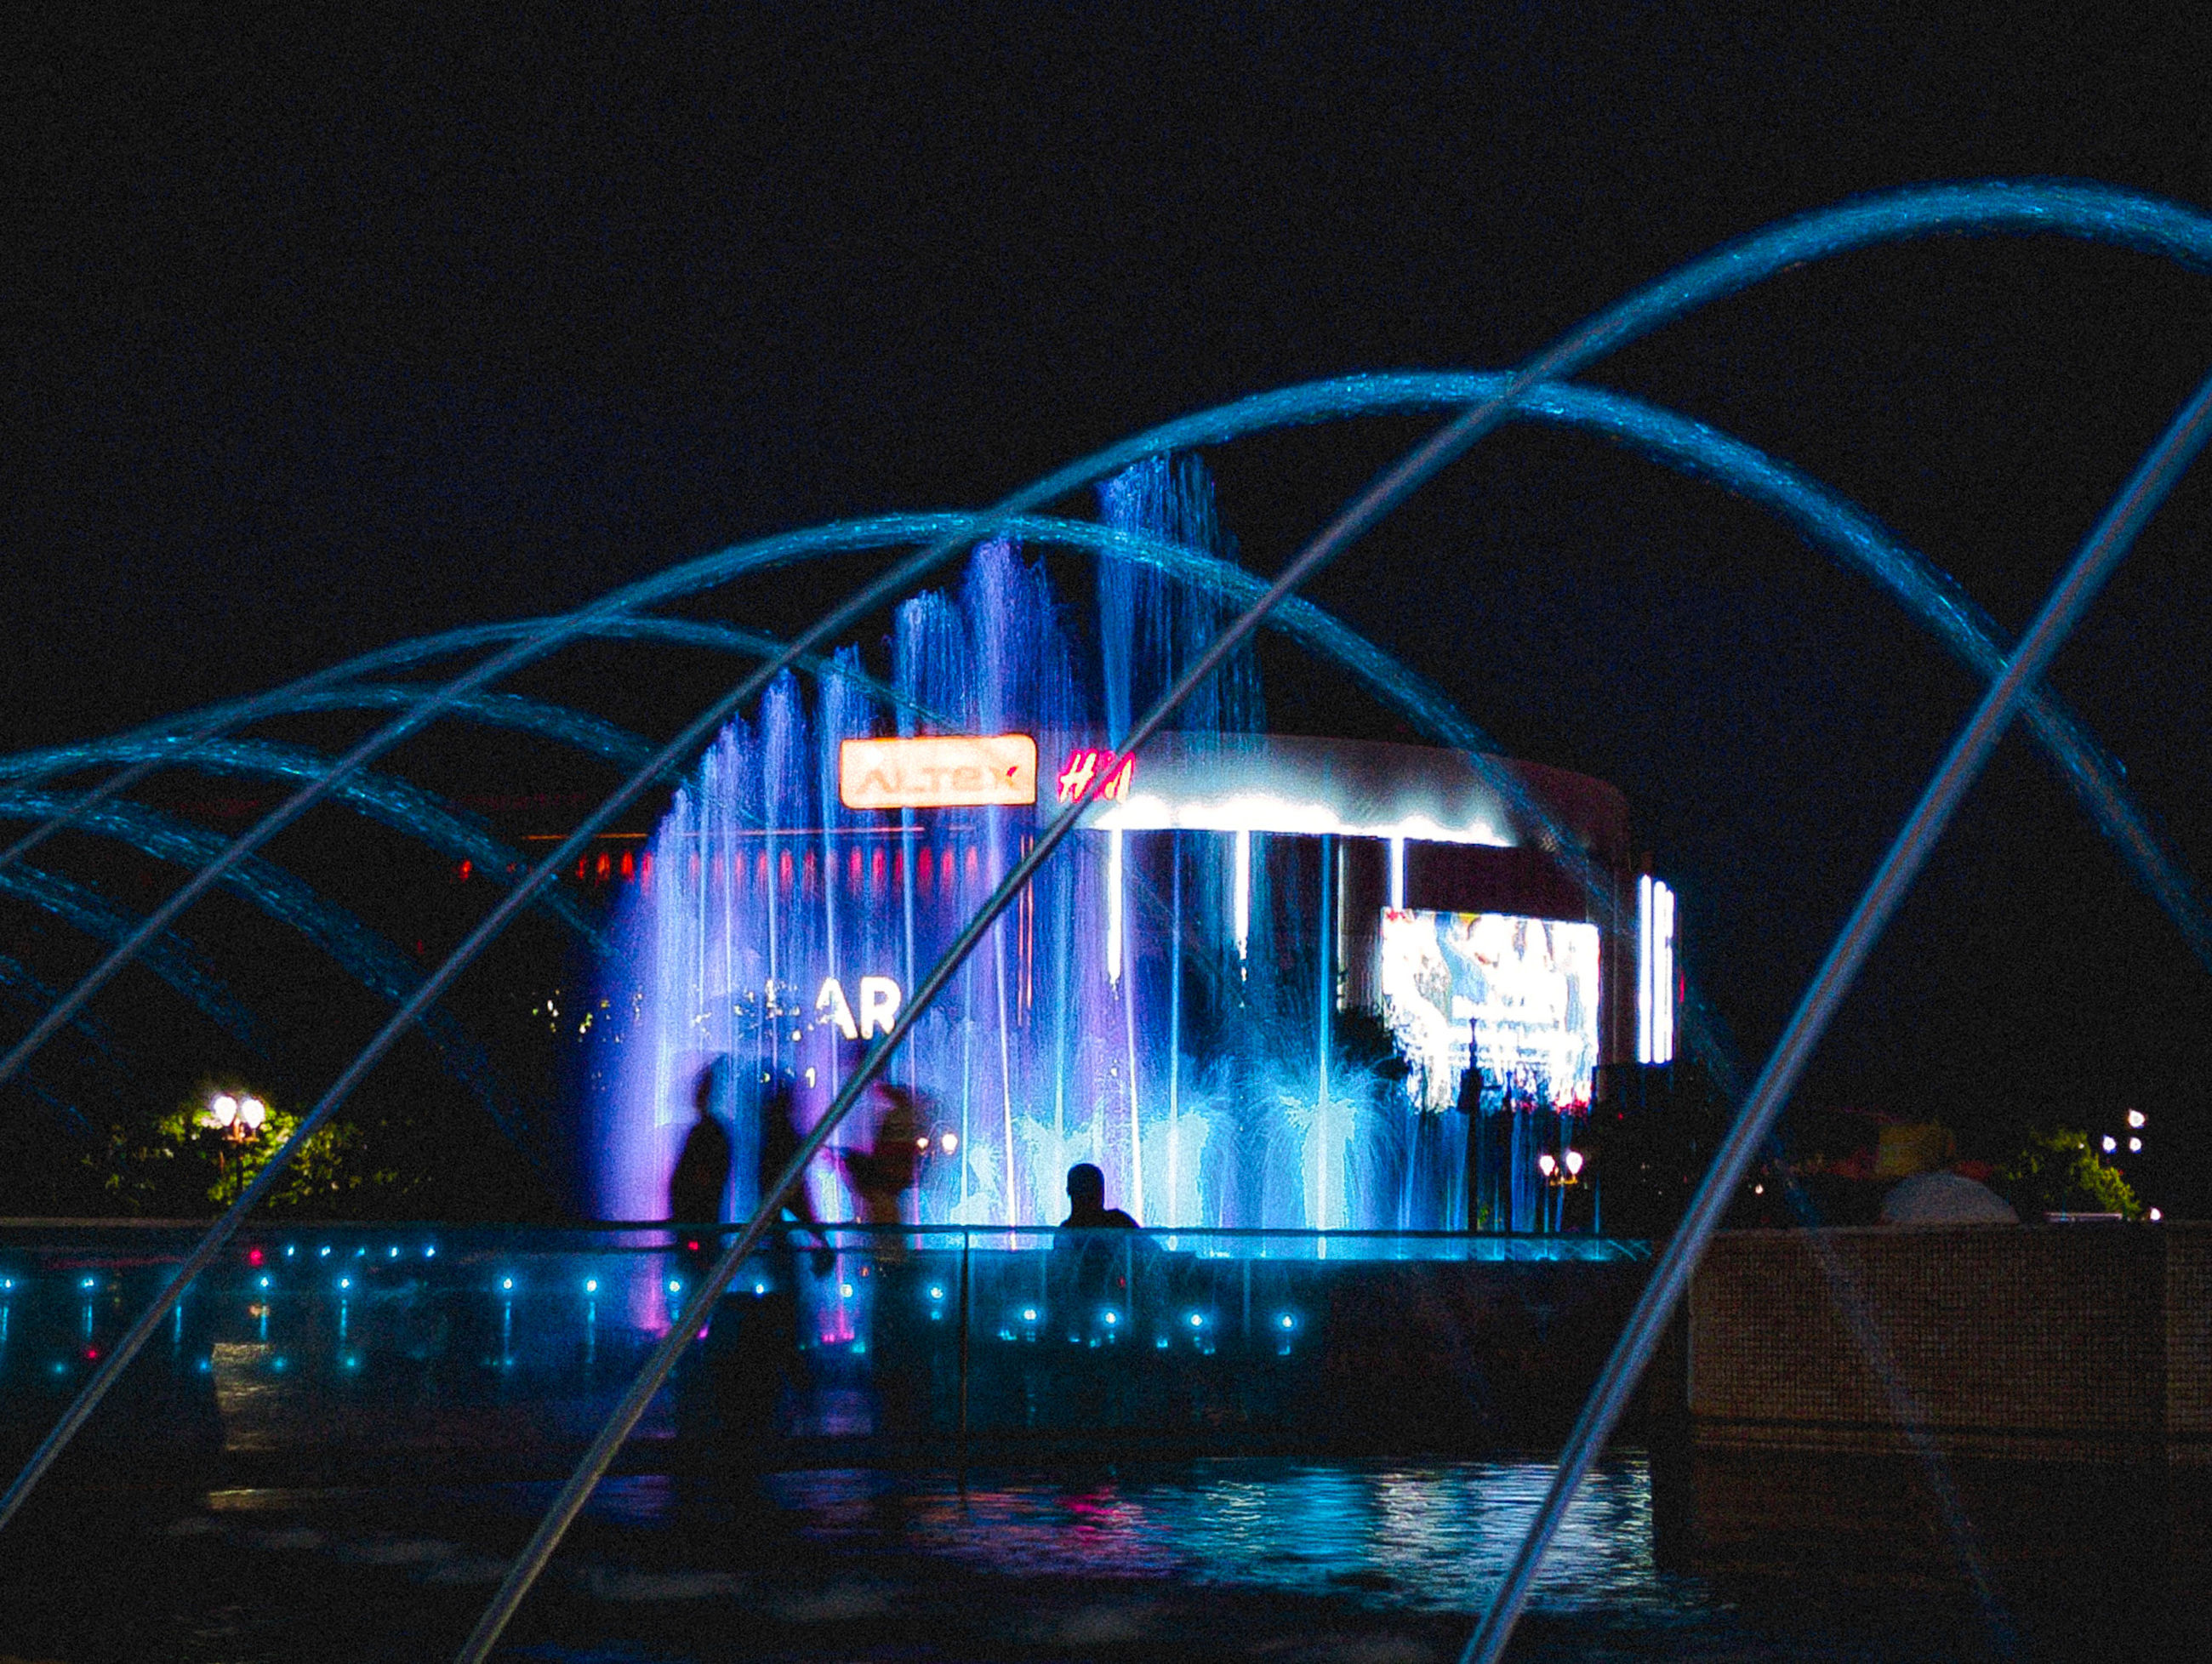 night, illuminated, architecture, light, stage, arts culture and entertainment, built structure, water, group of people, nature, building exterior, darkness, city, travel destinations, outdoors, lighting equipment, reflection, performance, sky